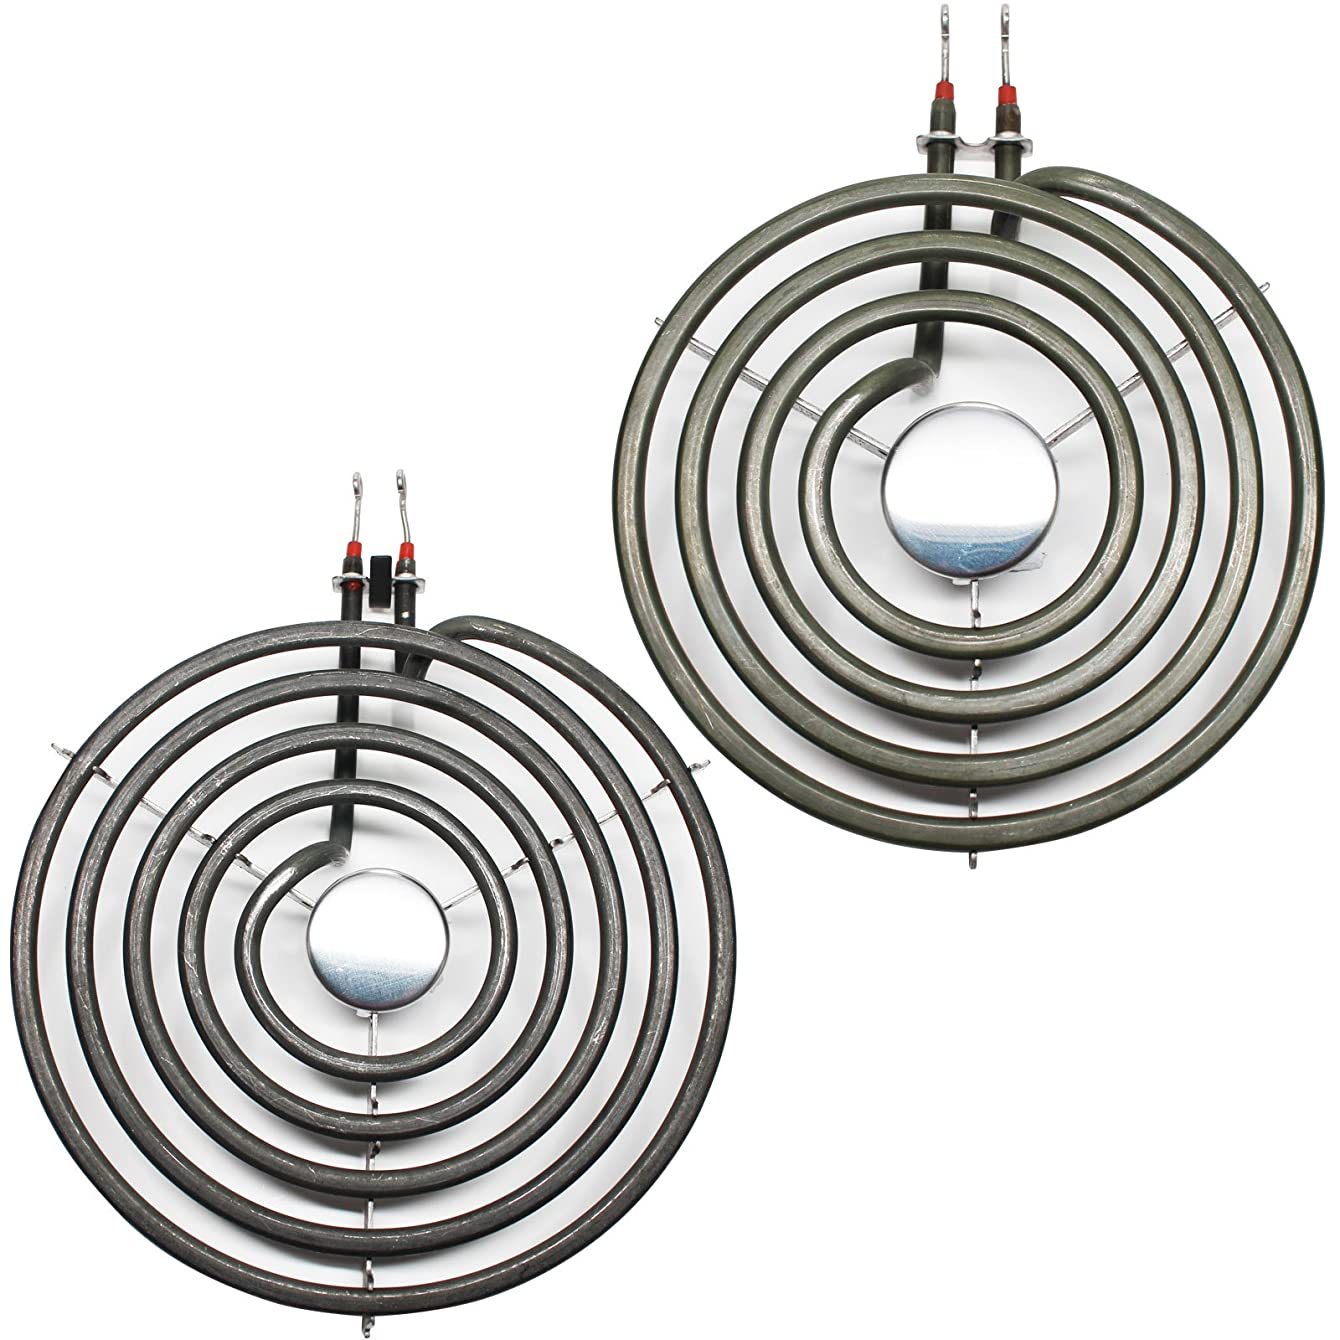 Replacement Whirlpool WERP3120PQ2 8 inch 5 Turns & 6 inch 4 Turns Surface Burner Elements - Compatible Whirlpool 9761345 & 660532 Heating Element for Range, Stove & Cooktop